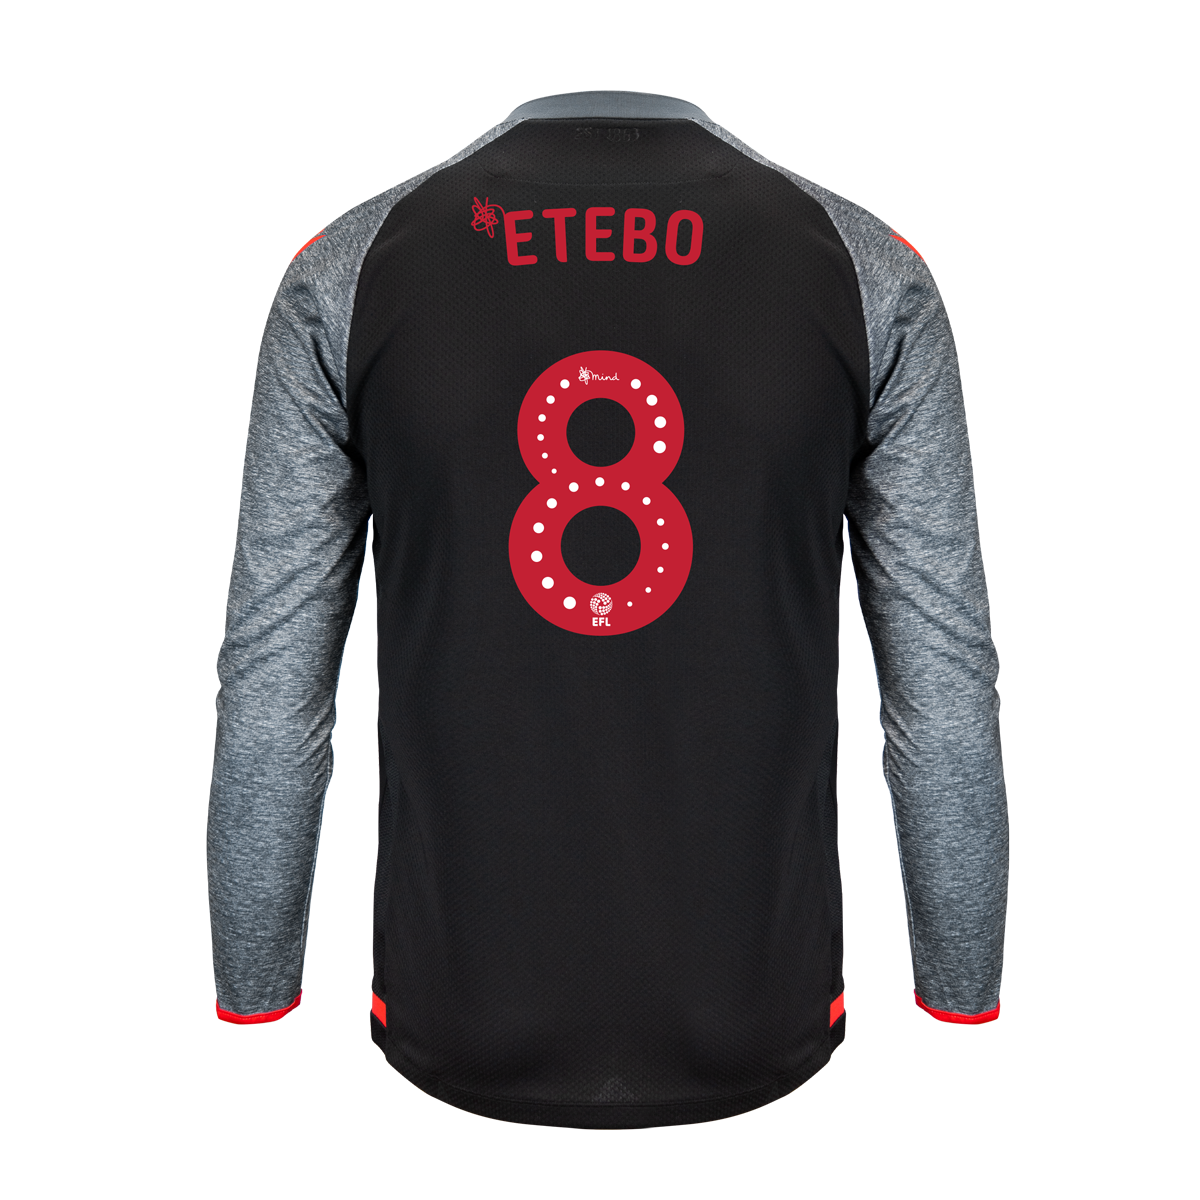 2019/20 Adult Away LS Shirt - Etebo